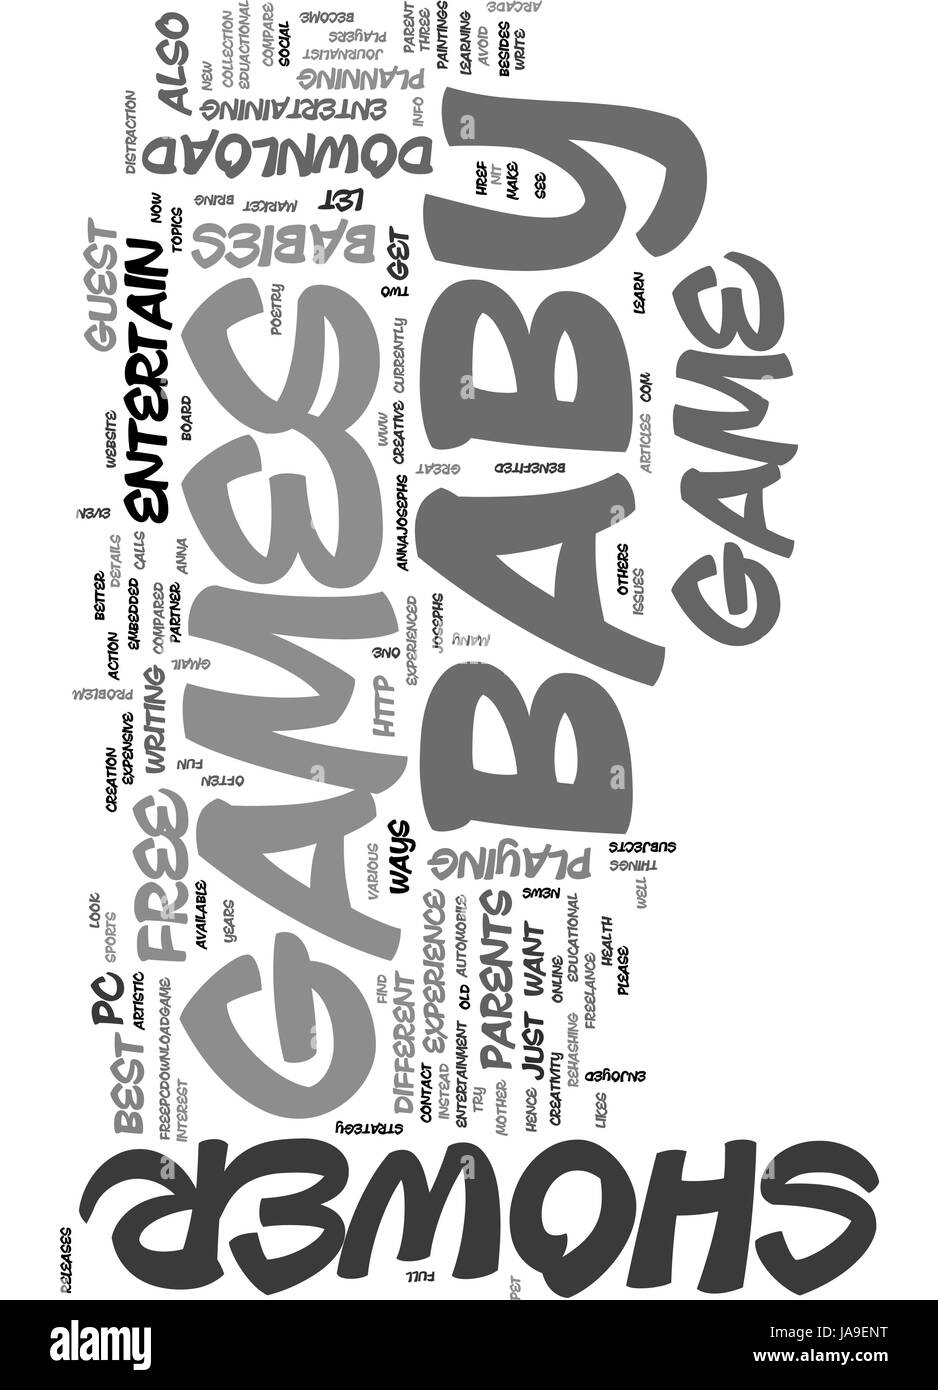 BEST BABY SHOWER GAMES TEXT WORD CLOUD CONCEPT - Stock Image